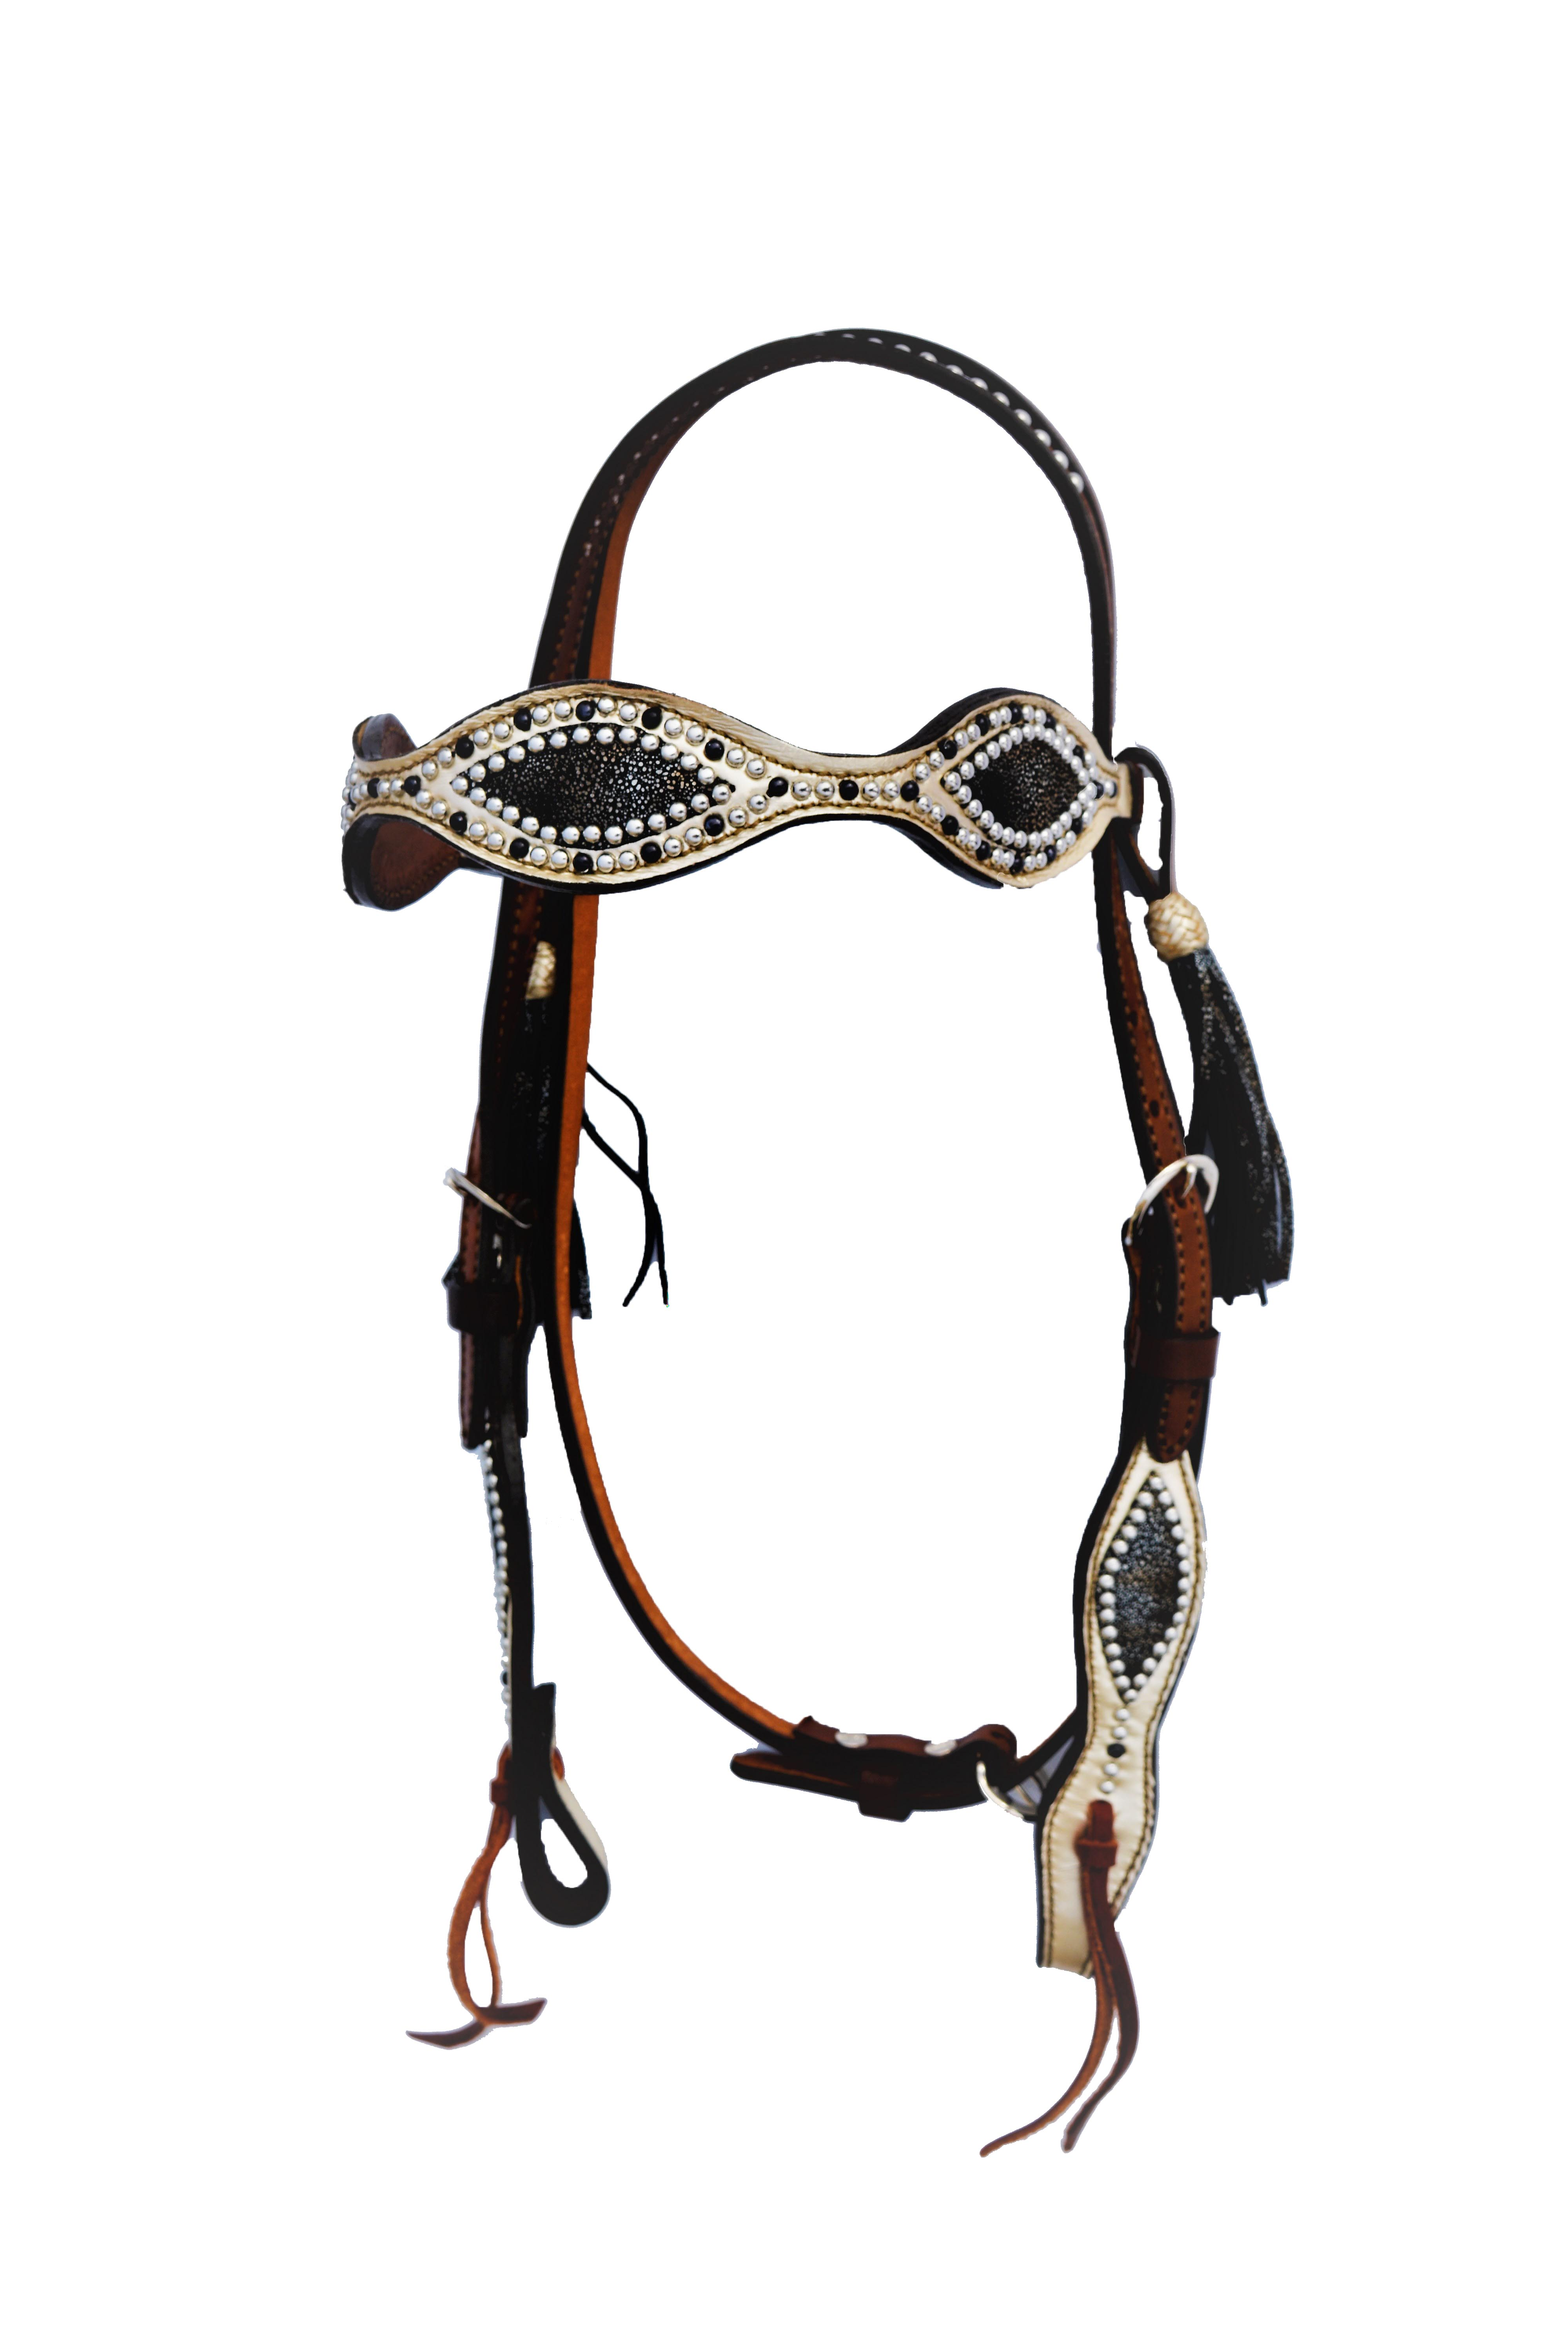 Scalloped Headstall with Metallic & Black Metal overlays